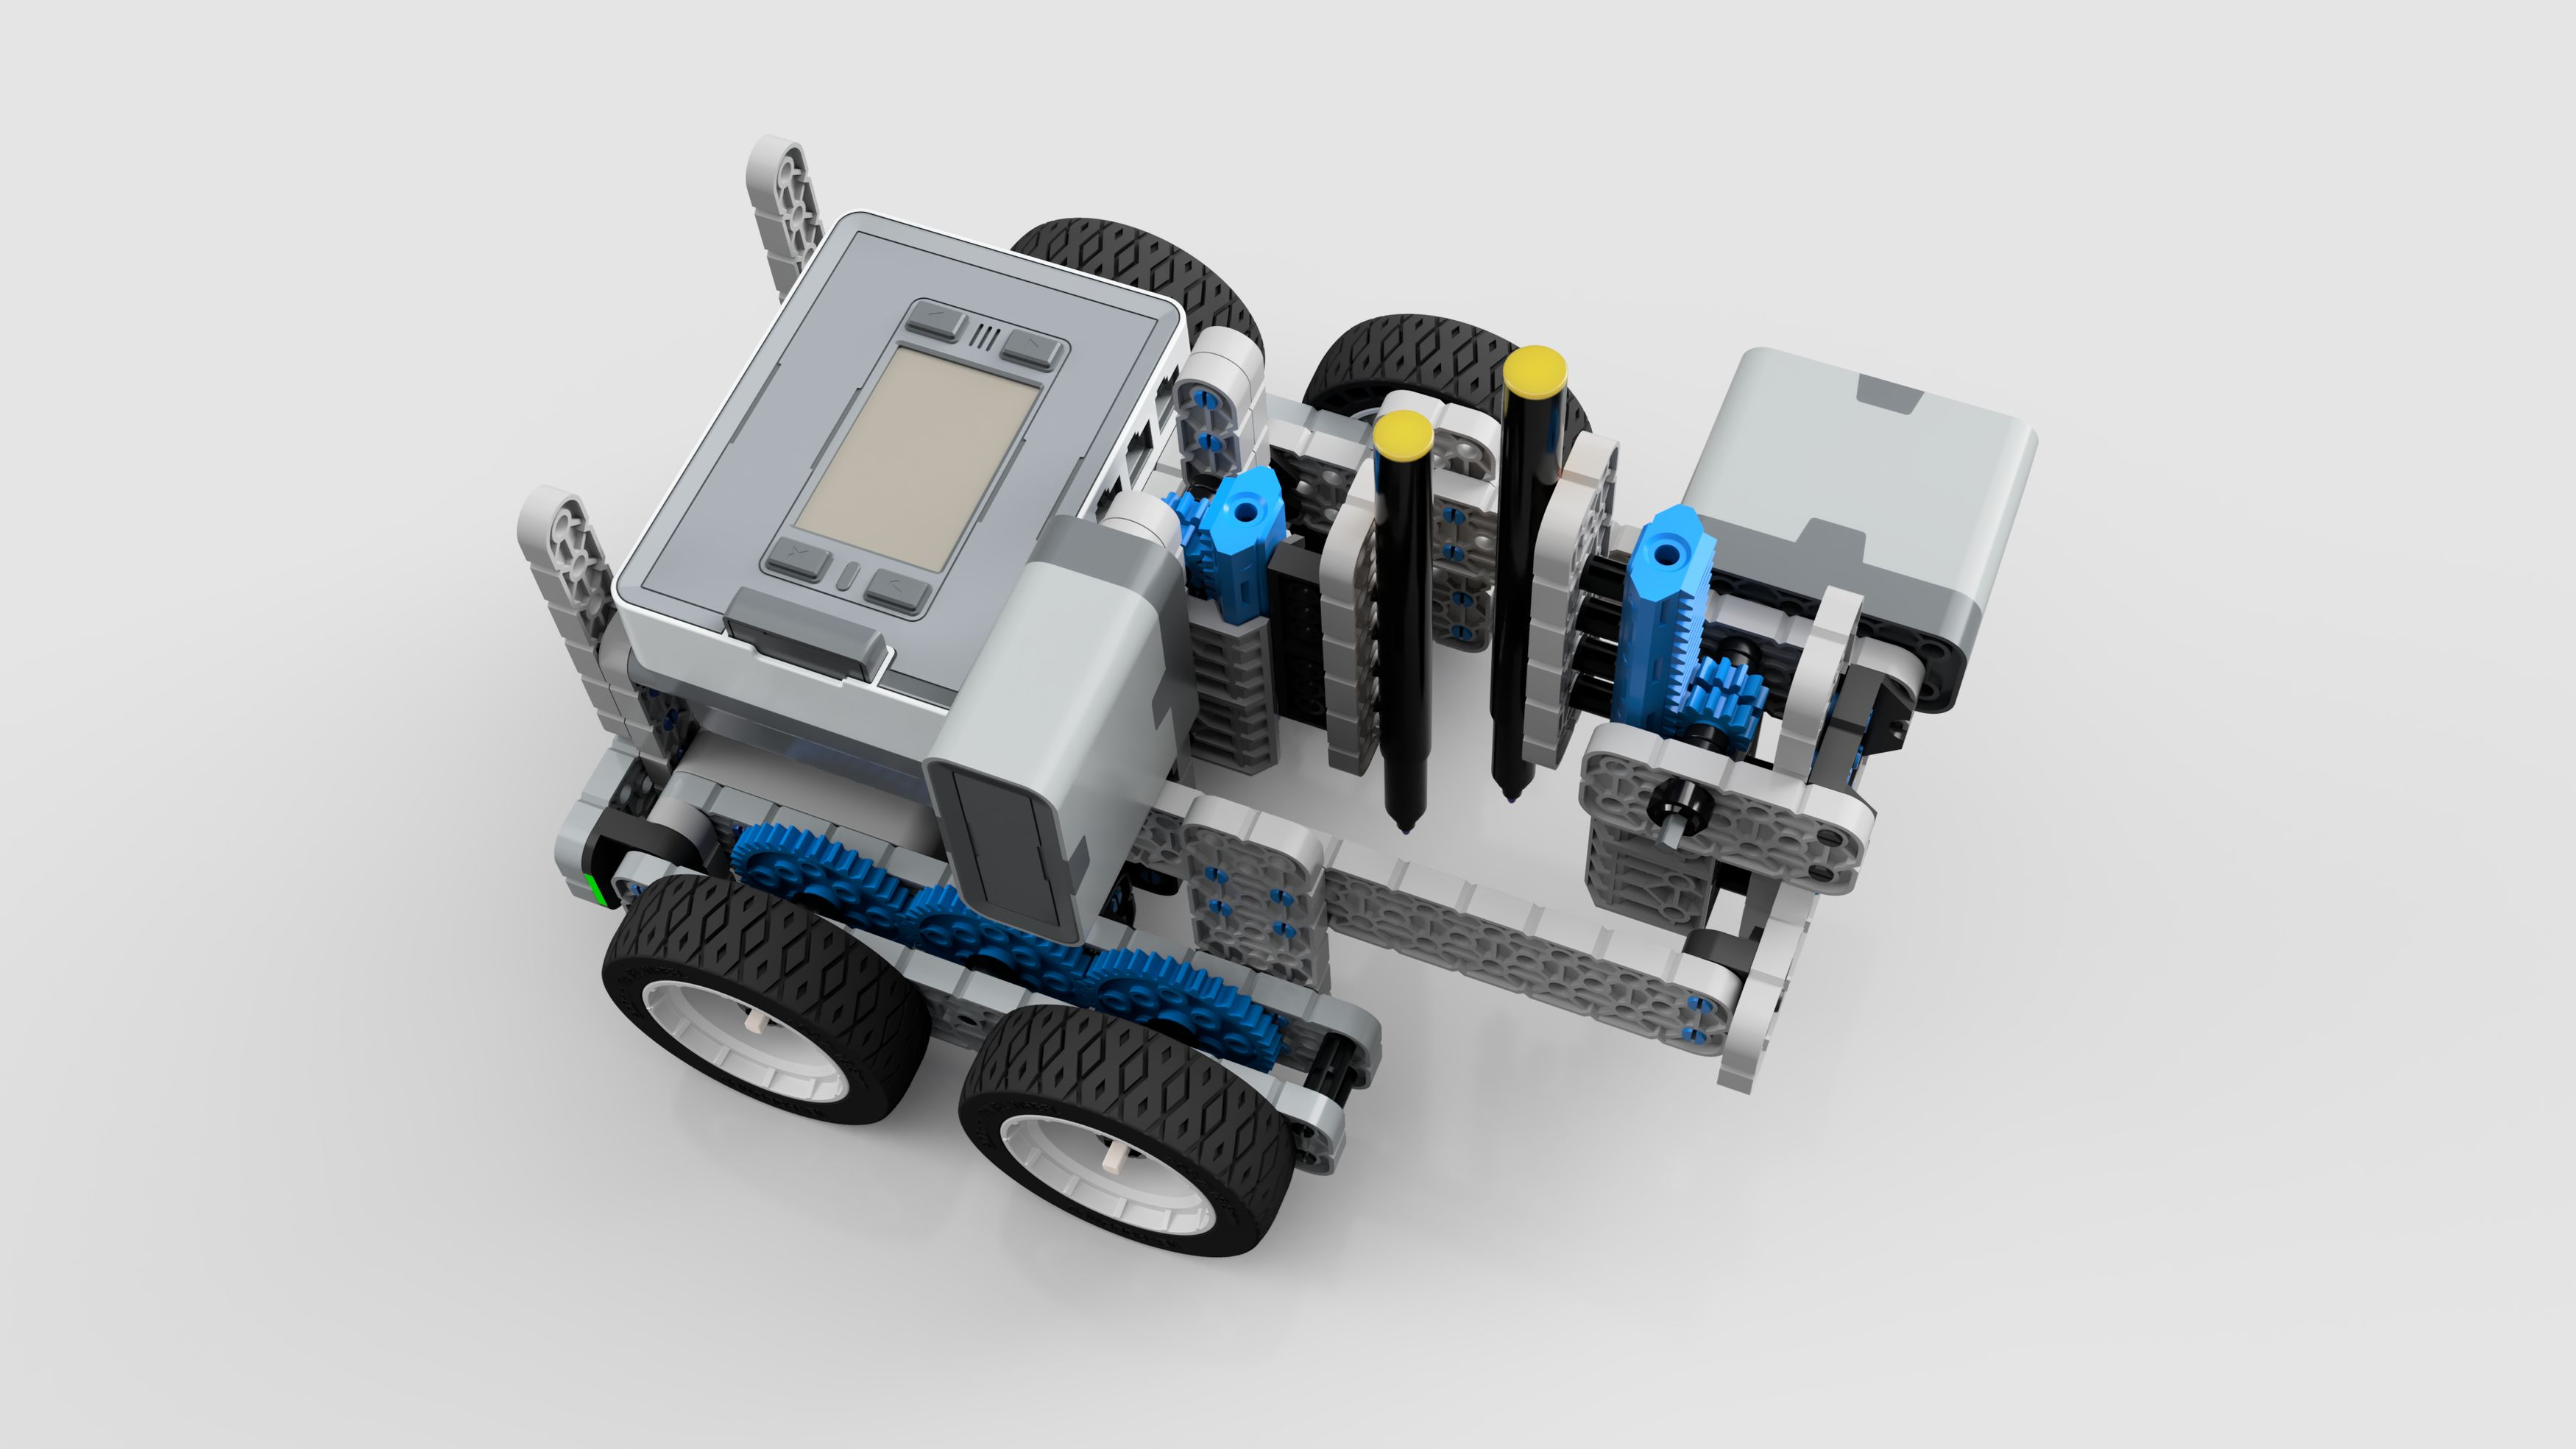 Vex-iq-robot-caneta-2020-may-24-05-59-04pm-000-customizedview19991398175-png-3500-3500